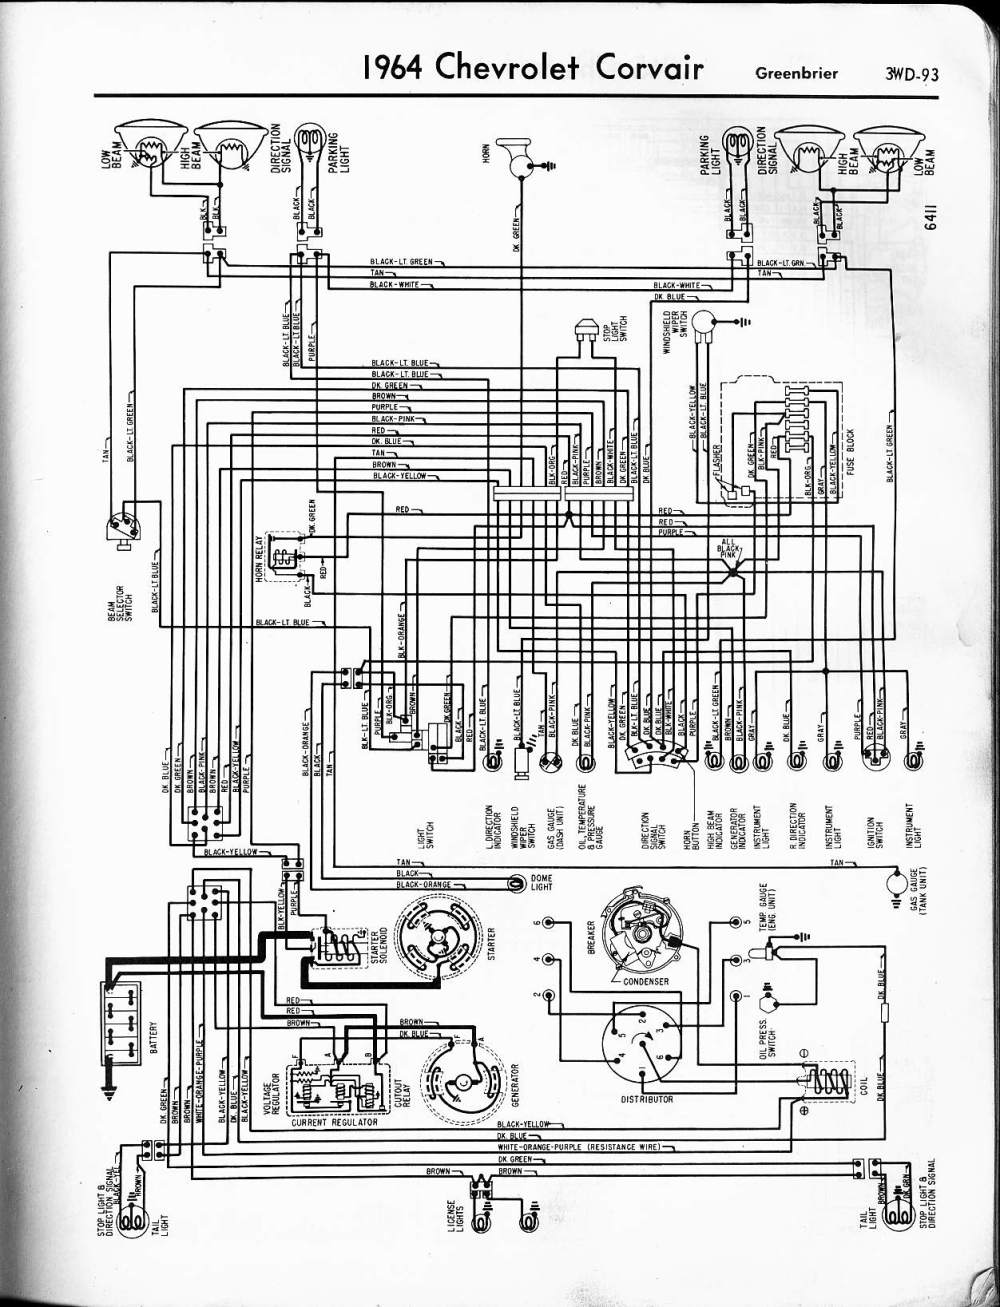 medium resolution of corsa starter motor wiring diagram 10 18 fearless wonder de u2022corsa starter motor wiring diagram